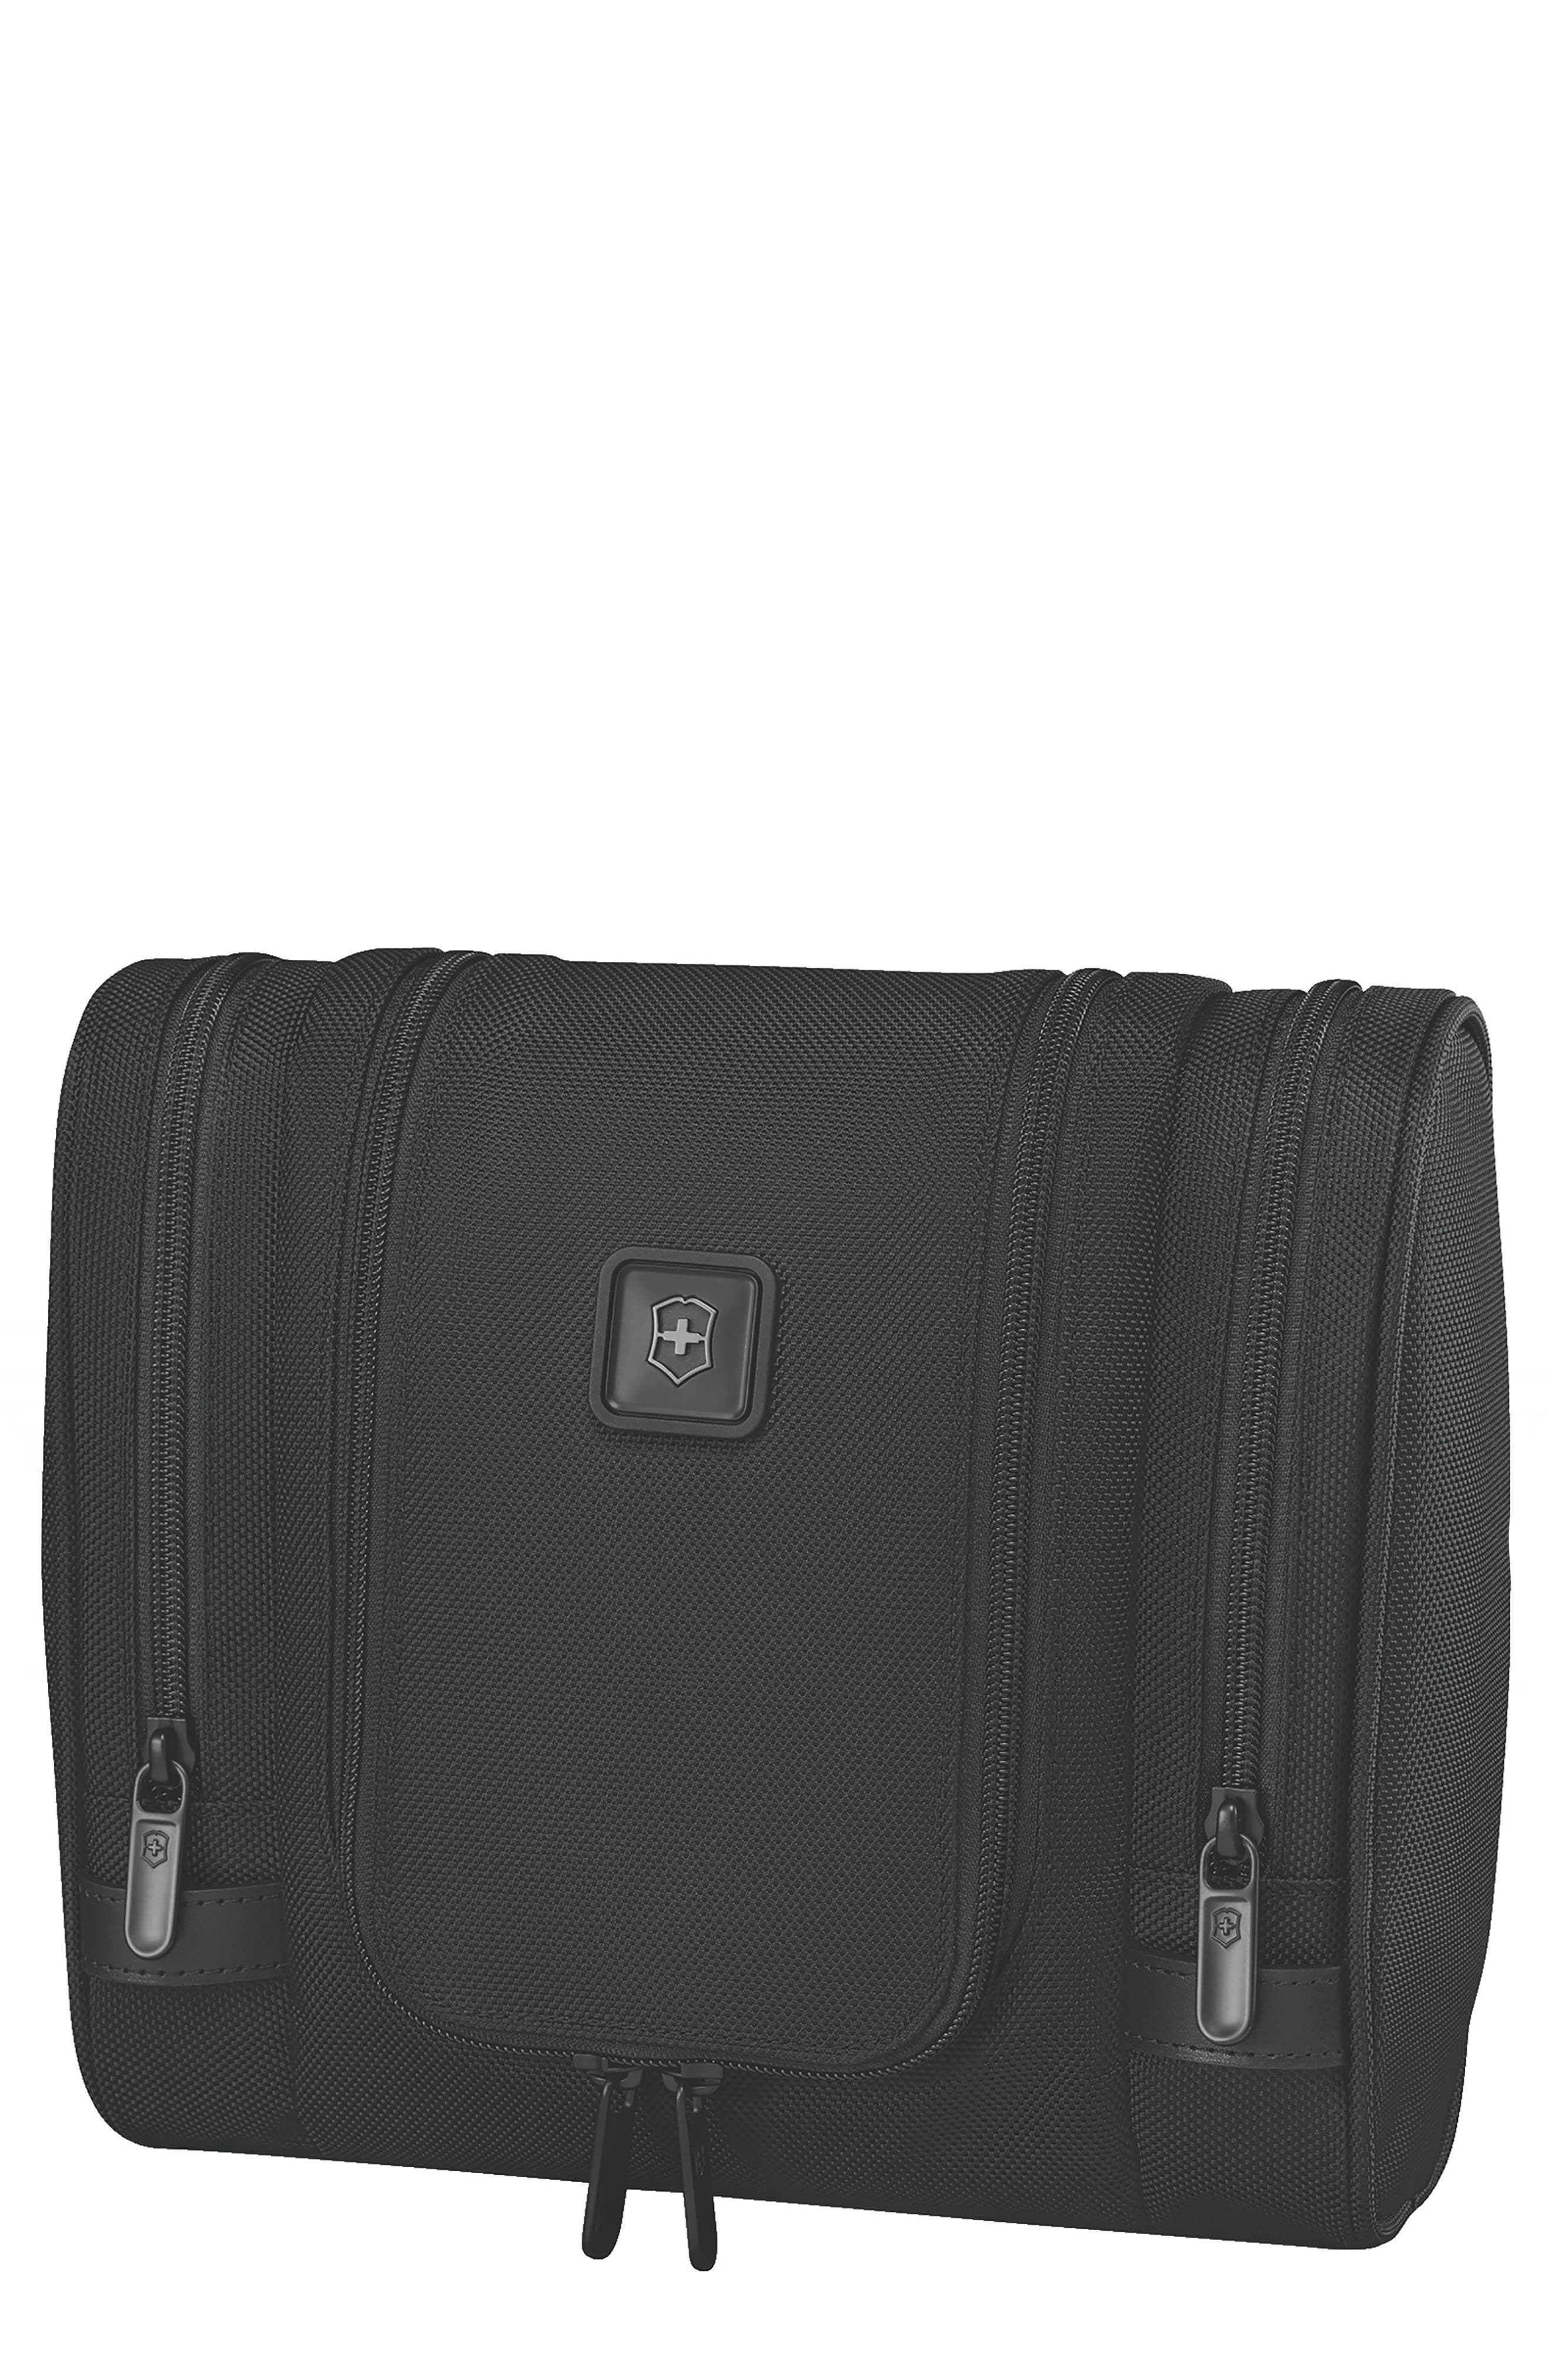 Lexicon 2.0 Hanging Travel Kit,                         Main,                         color, 001